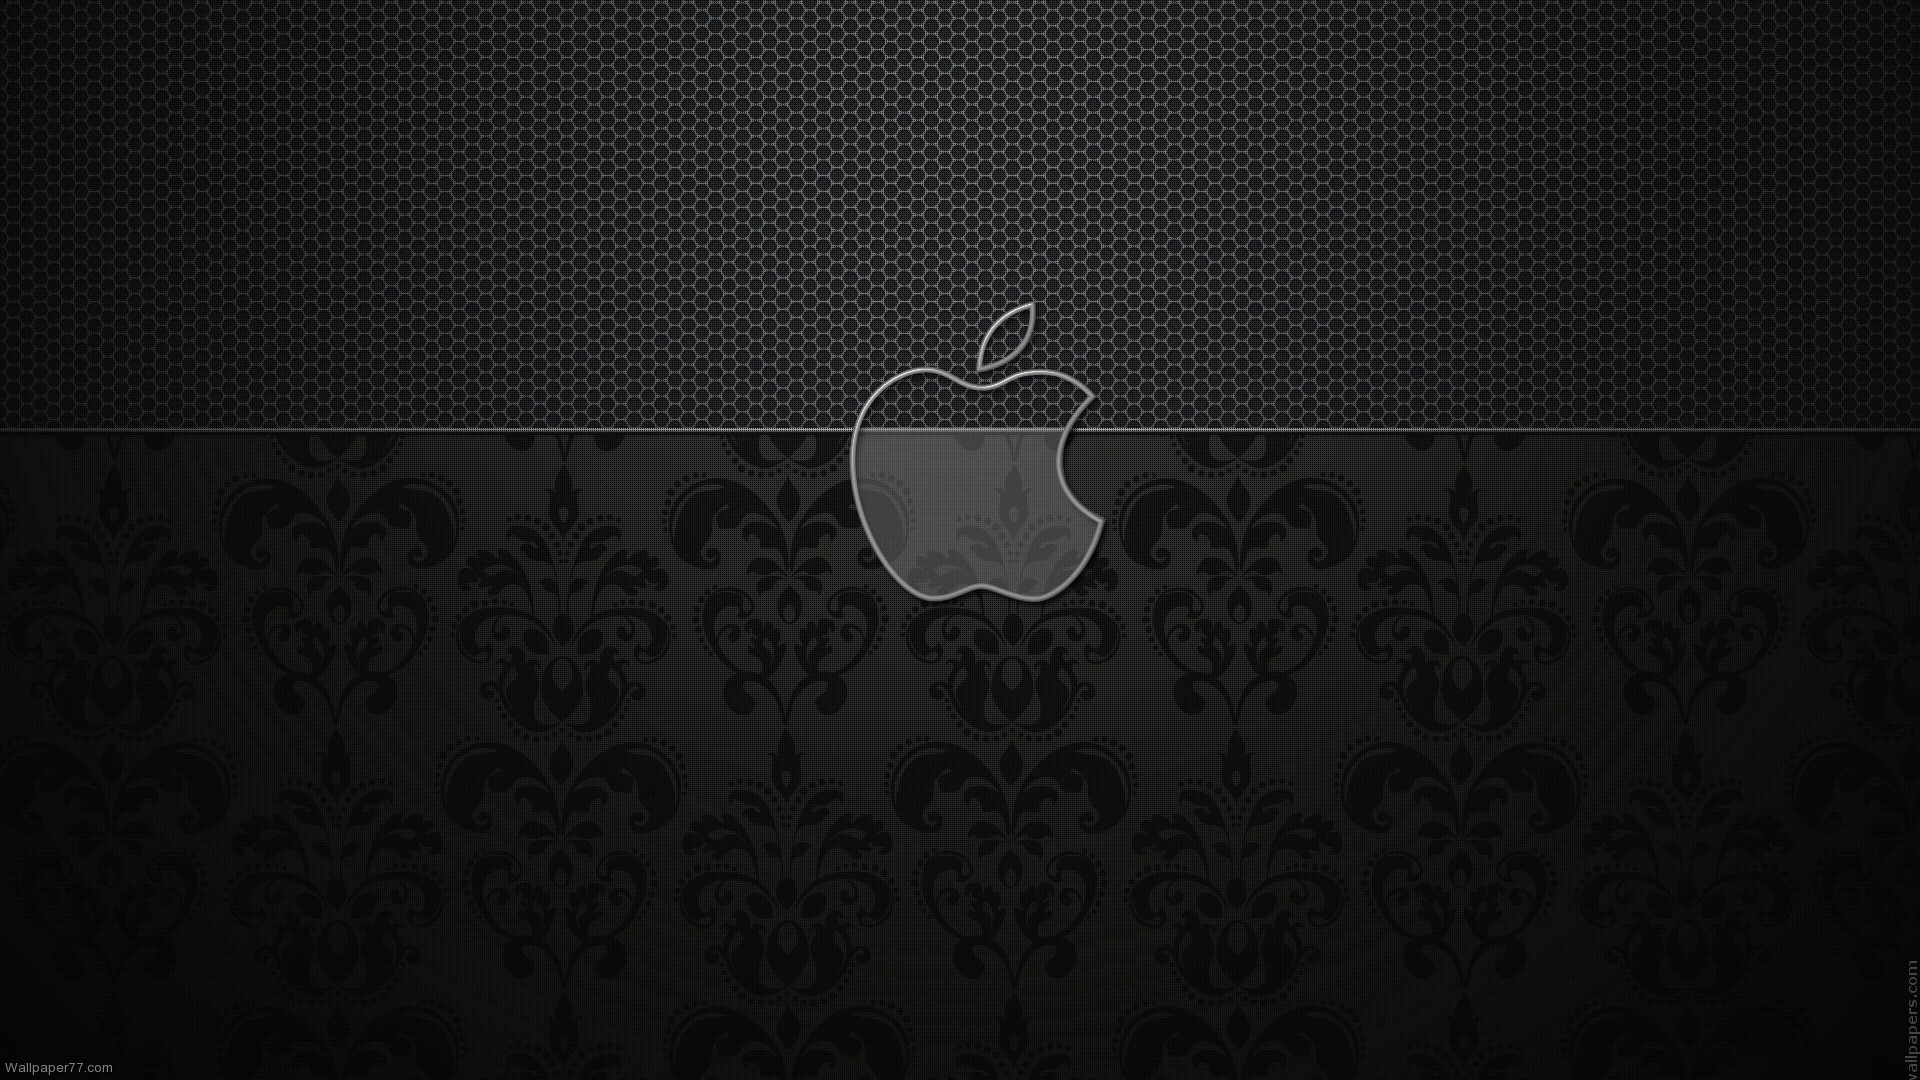 Black-Apple-Logo-1920x1080-pixels-tagged-Apple-Computer-MAC-W-wallpaper-wpc9002919